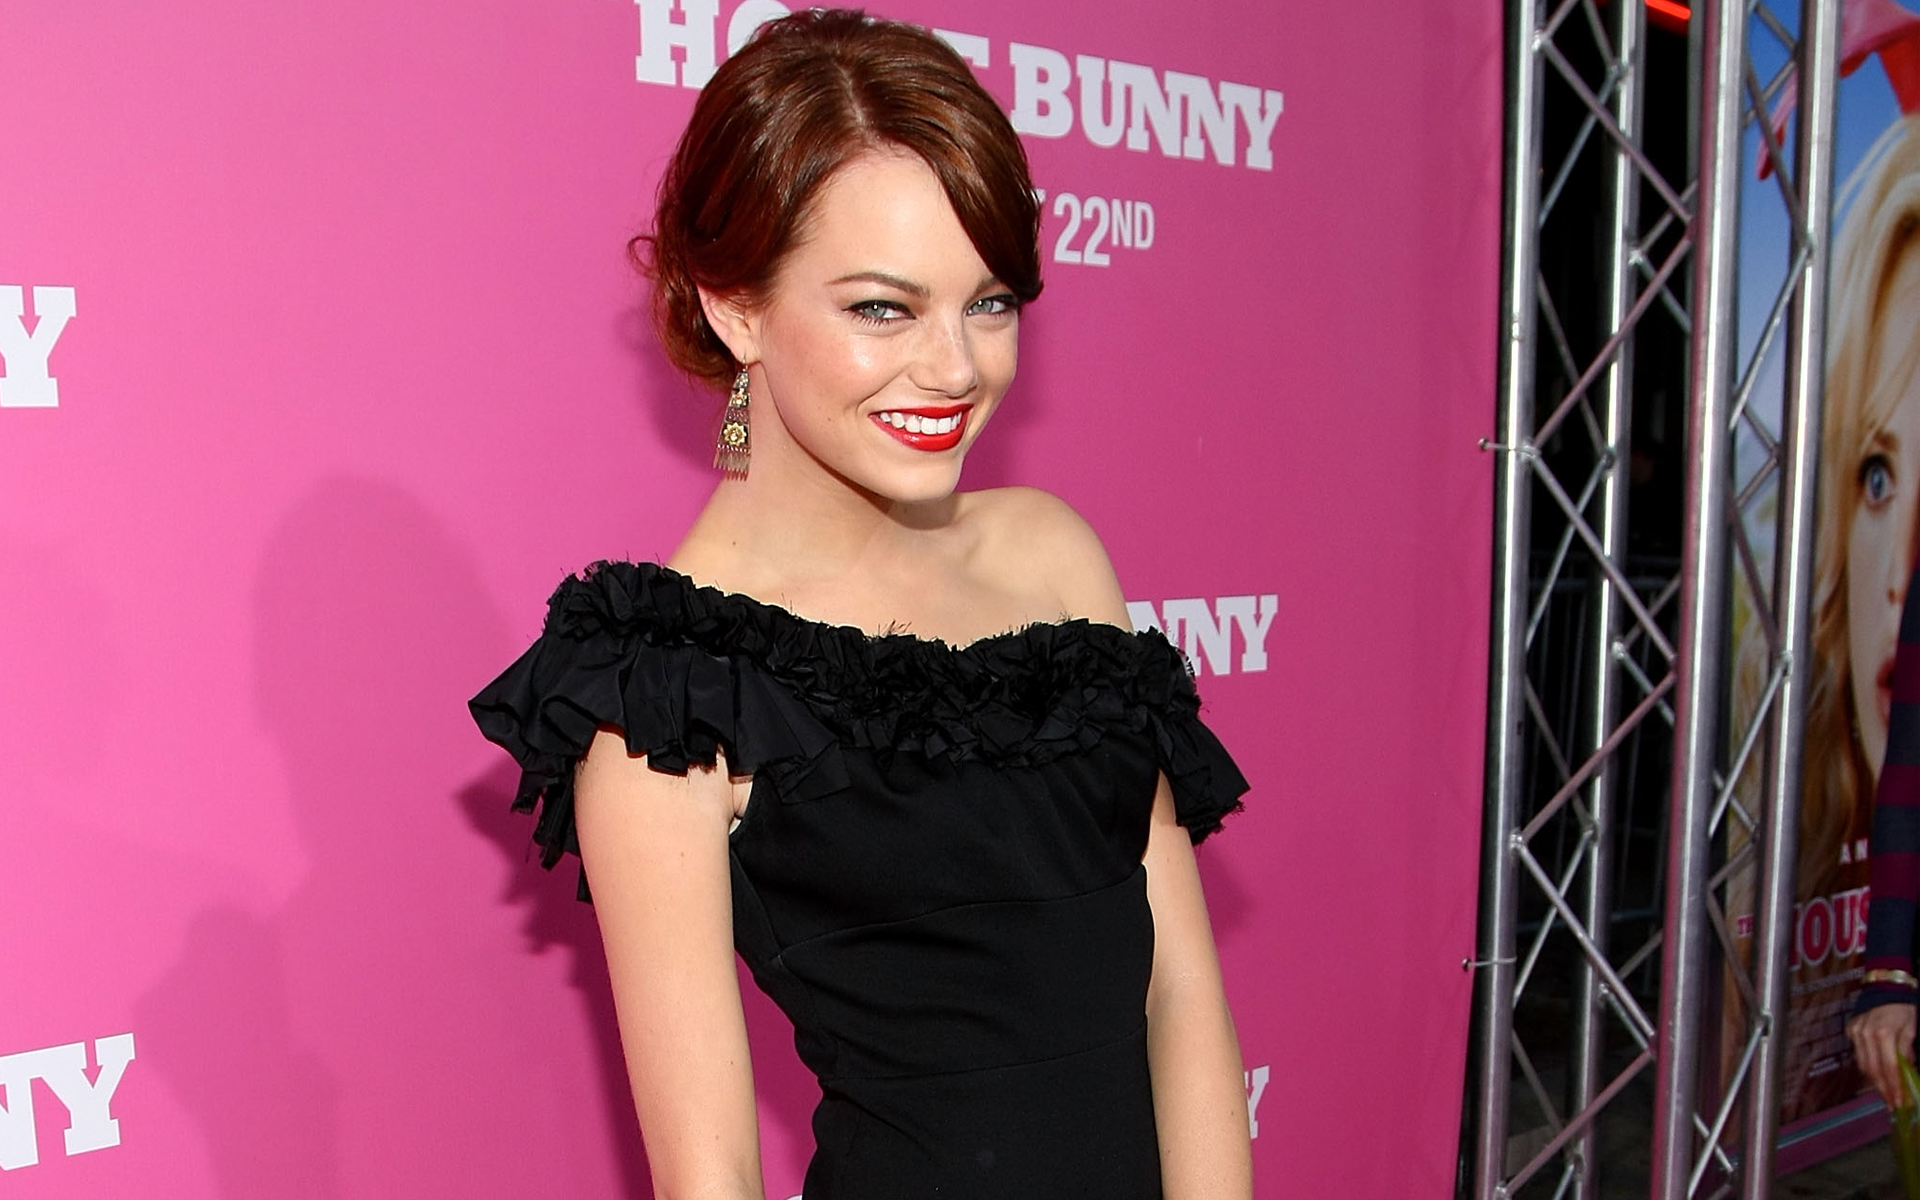 download emma stone beautiful smile face pose in function laptop free images hd background